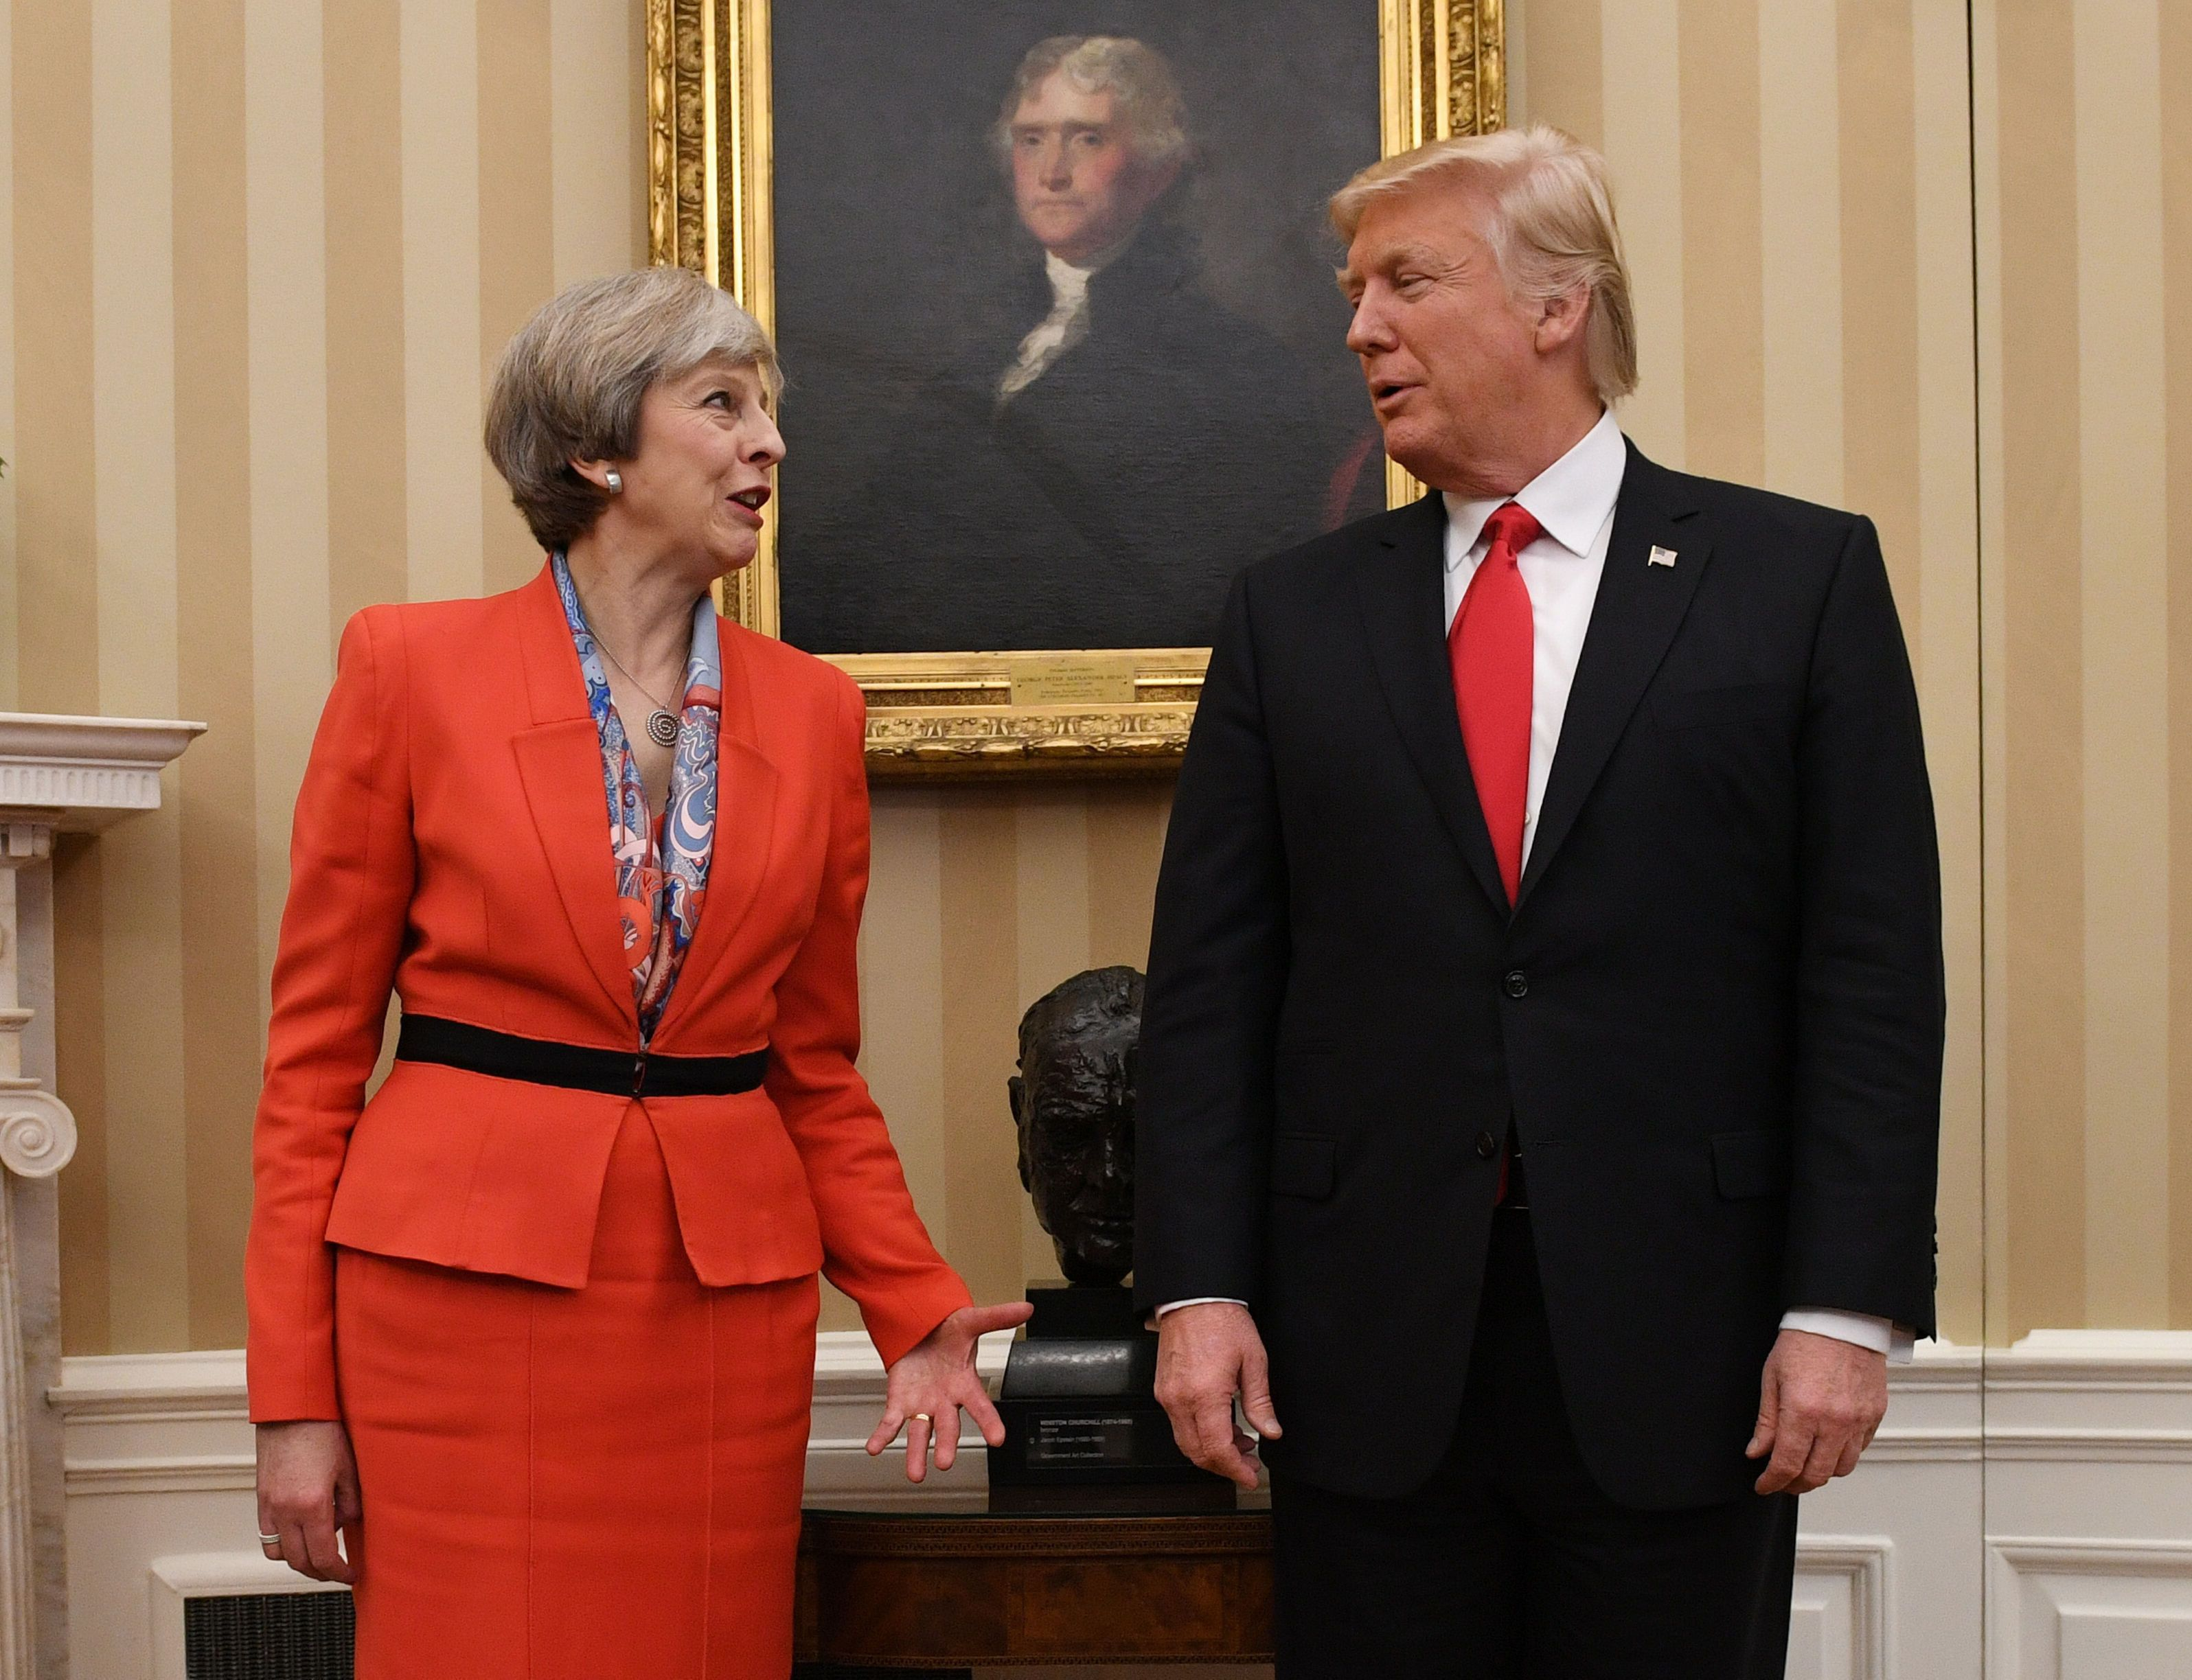 Trump gathered in July to visit the UK